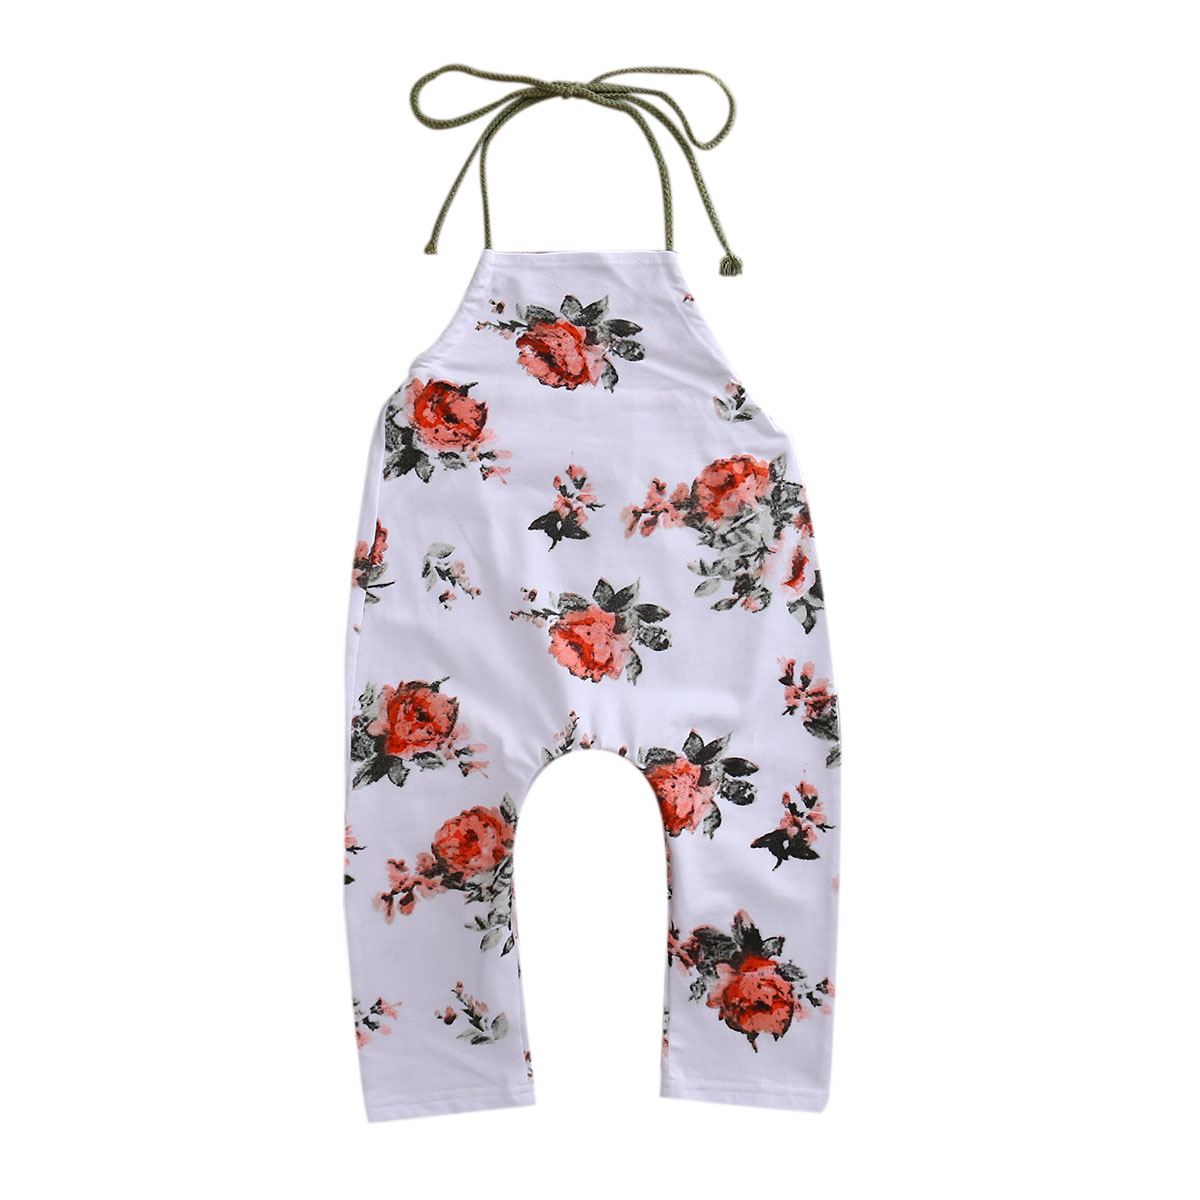 2017 Summer Newborn Toddler Kids Baby Girls Floral Romper Sleeveless Backless Halter Jumpsuit One Pieces Sunsuit Clothes 2017 cotton toddler kids girls clothes sleeveless floral romper baby girl rompers playsuit one pieces outfit kids tracksuit